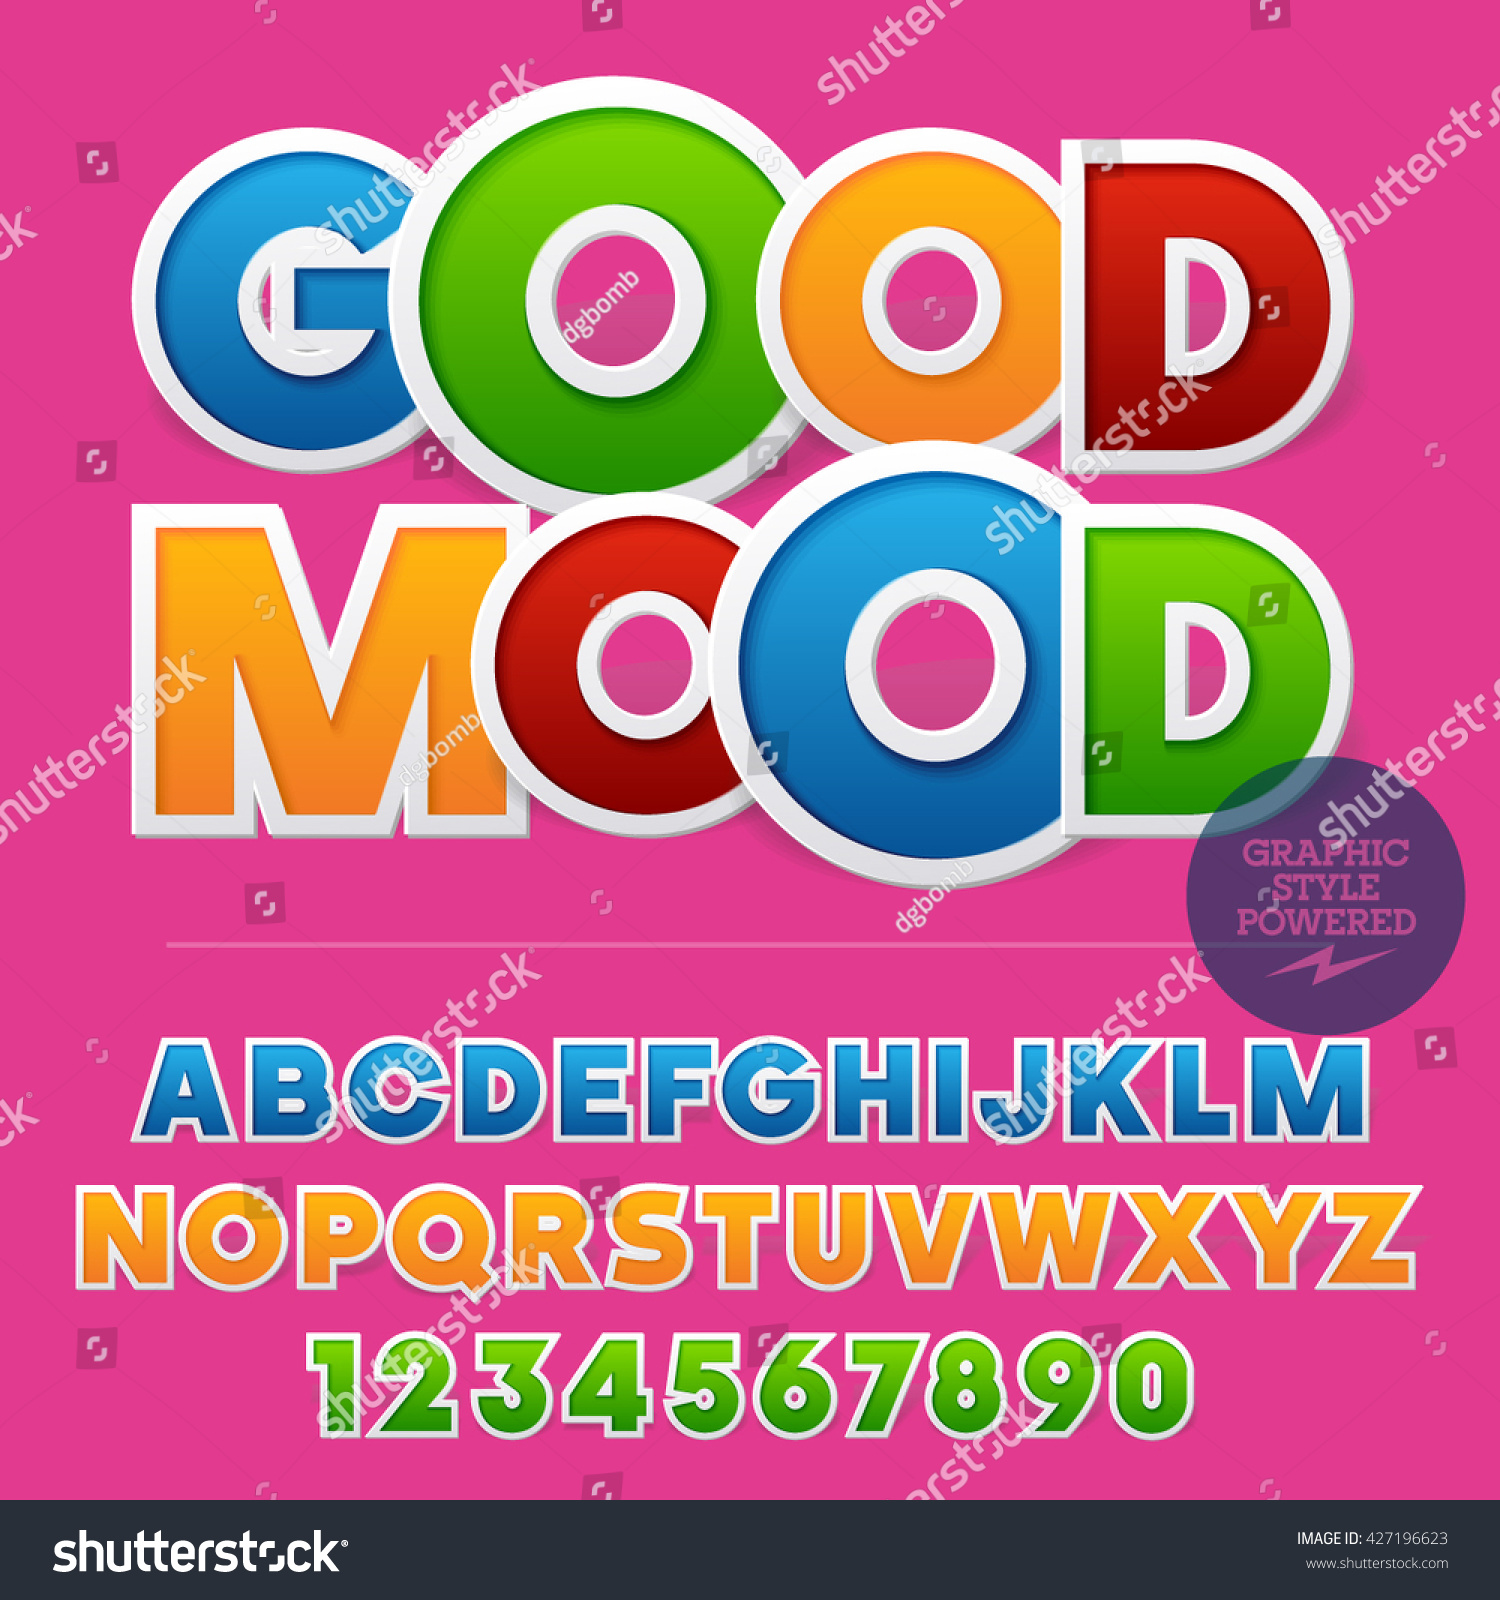 Colorful Sticker Styled Set Alphabet Letters Stock Vector (Royalty ...